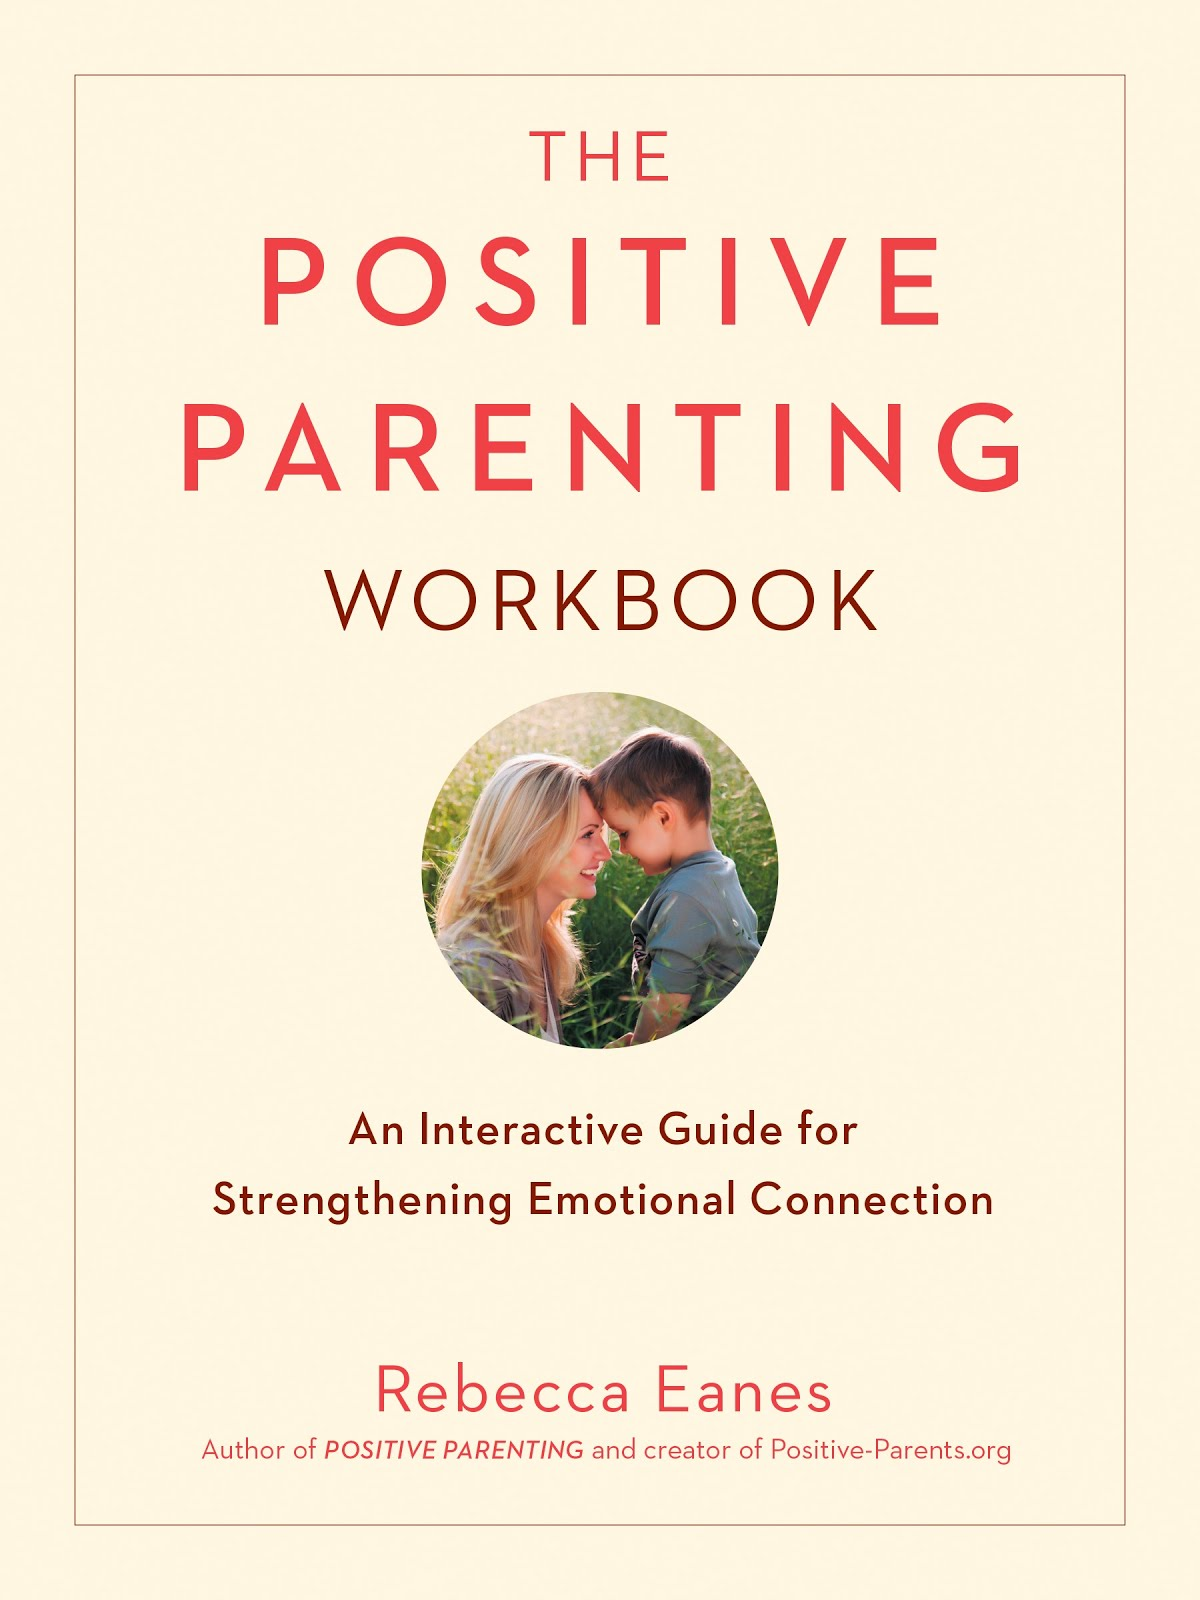 Preorder the Positive Parenting Workbook